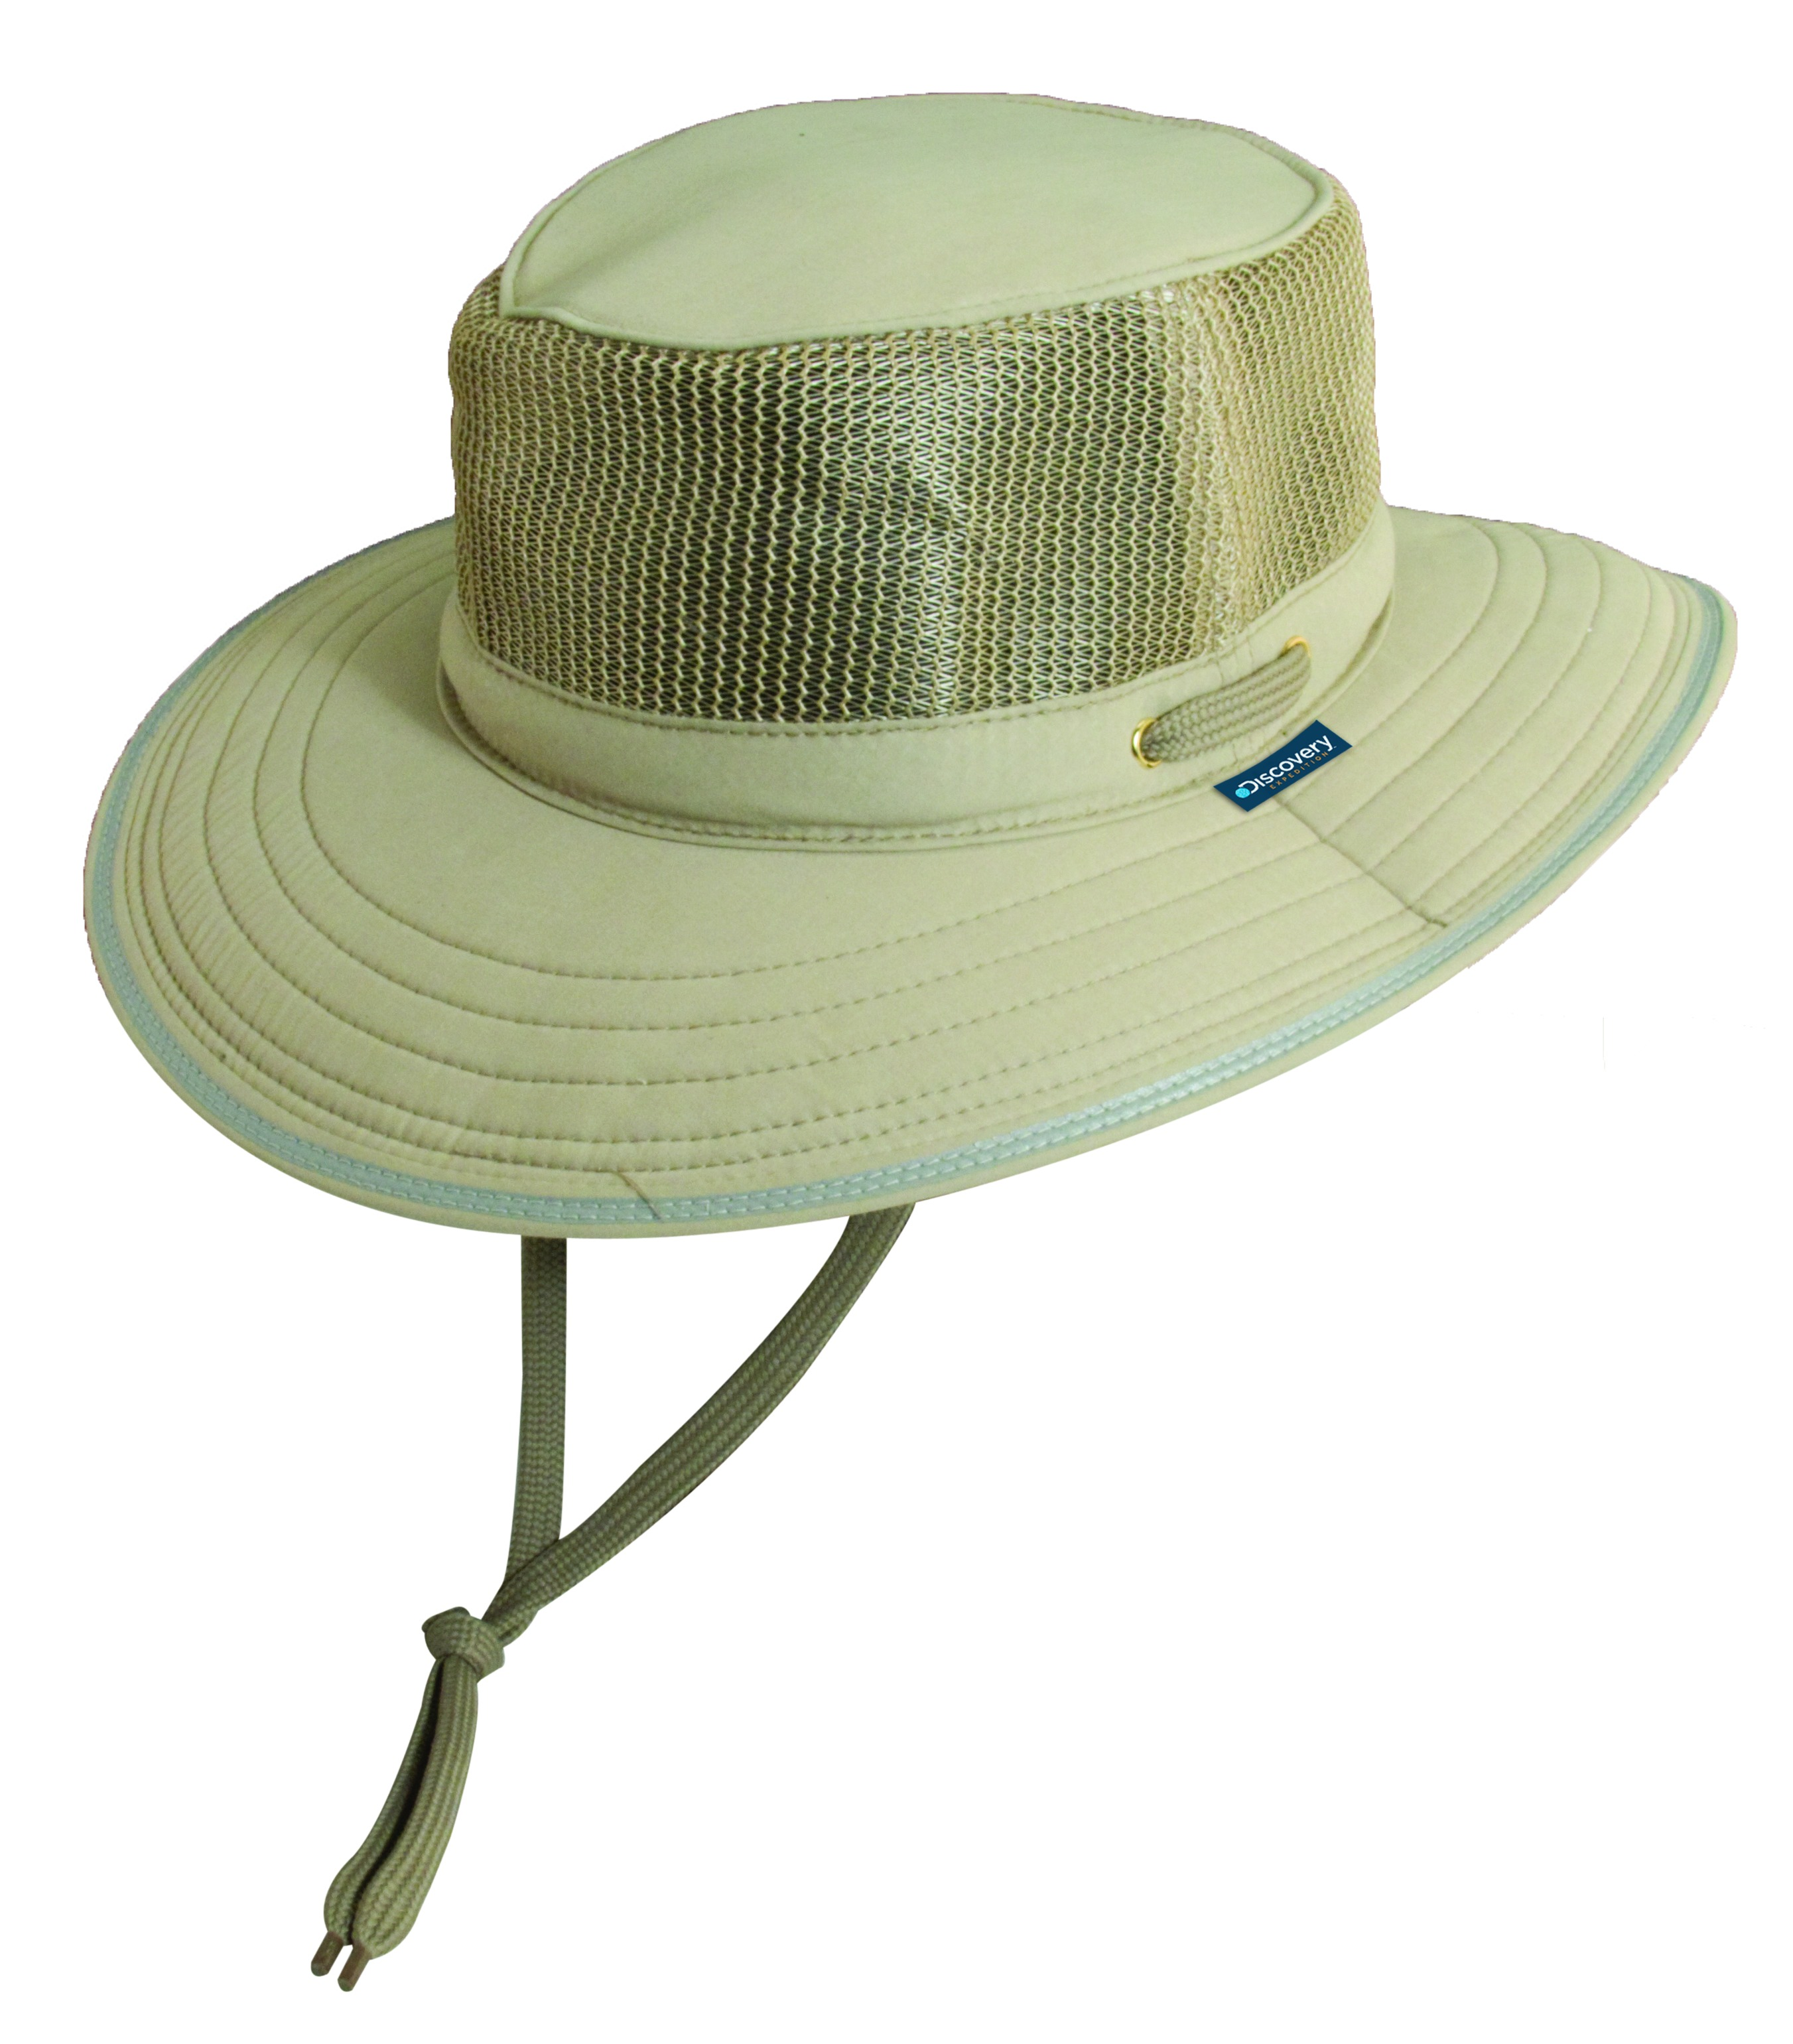 Khaki Discovery Expedition Microfiber Boonie Hat With Mesh Sides 1334da1b1d6